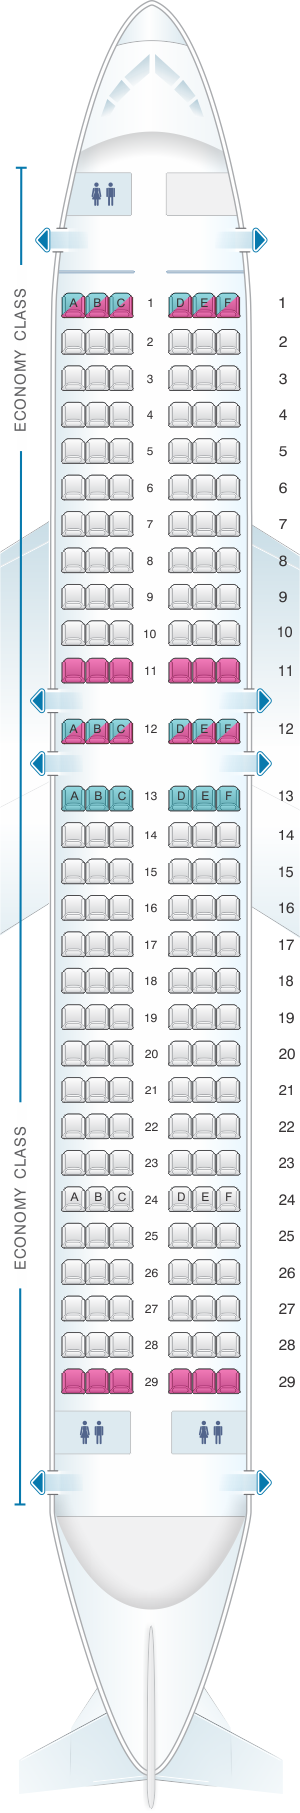 Seat map for Aer Lingus Airbus A320